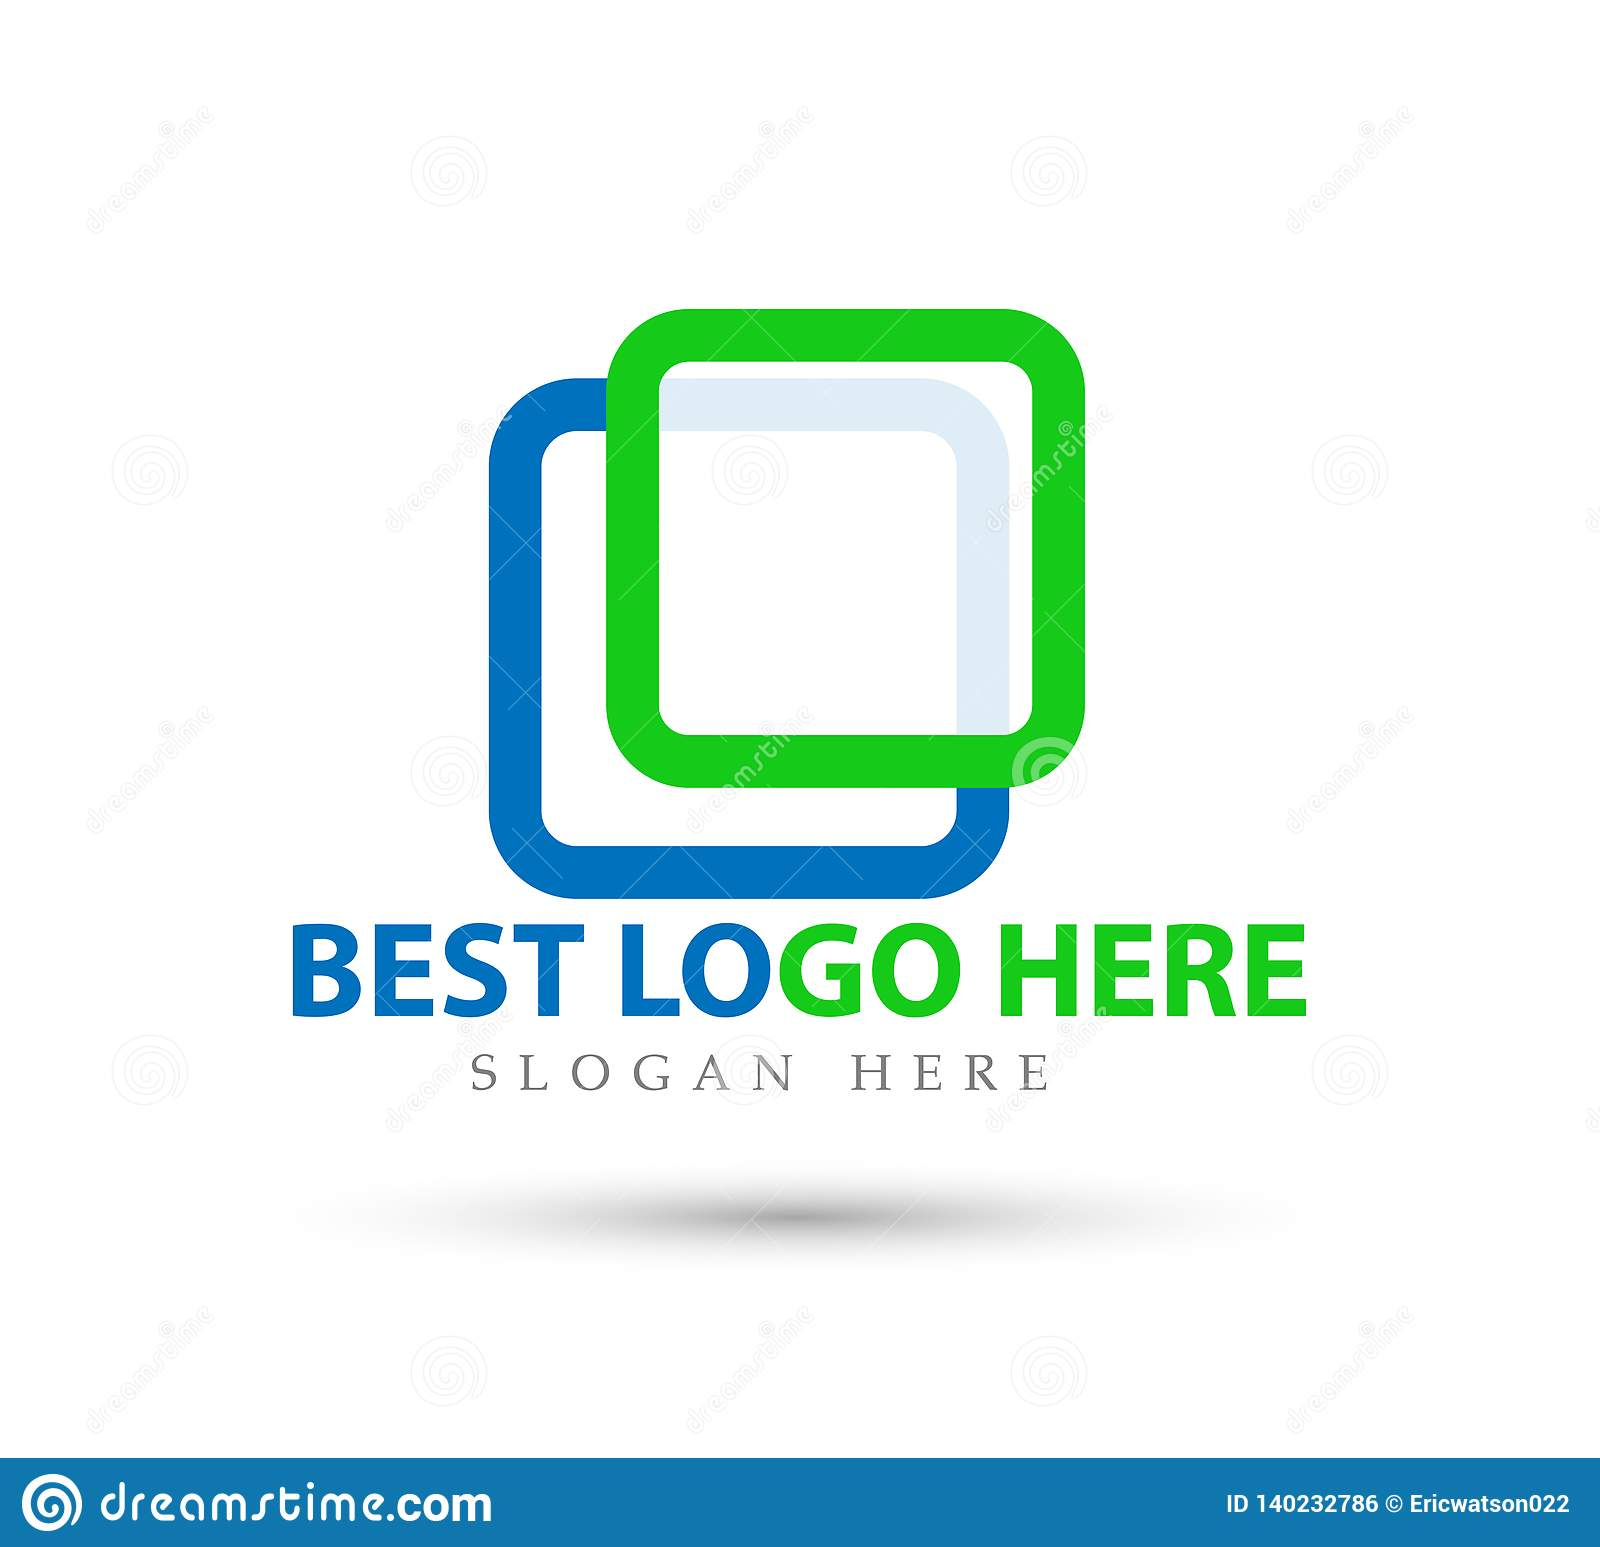 Abstract logo for business company. new trendy Industry, finance, bank logotype idea icon